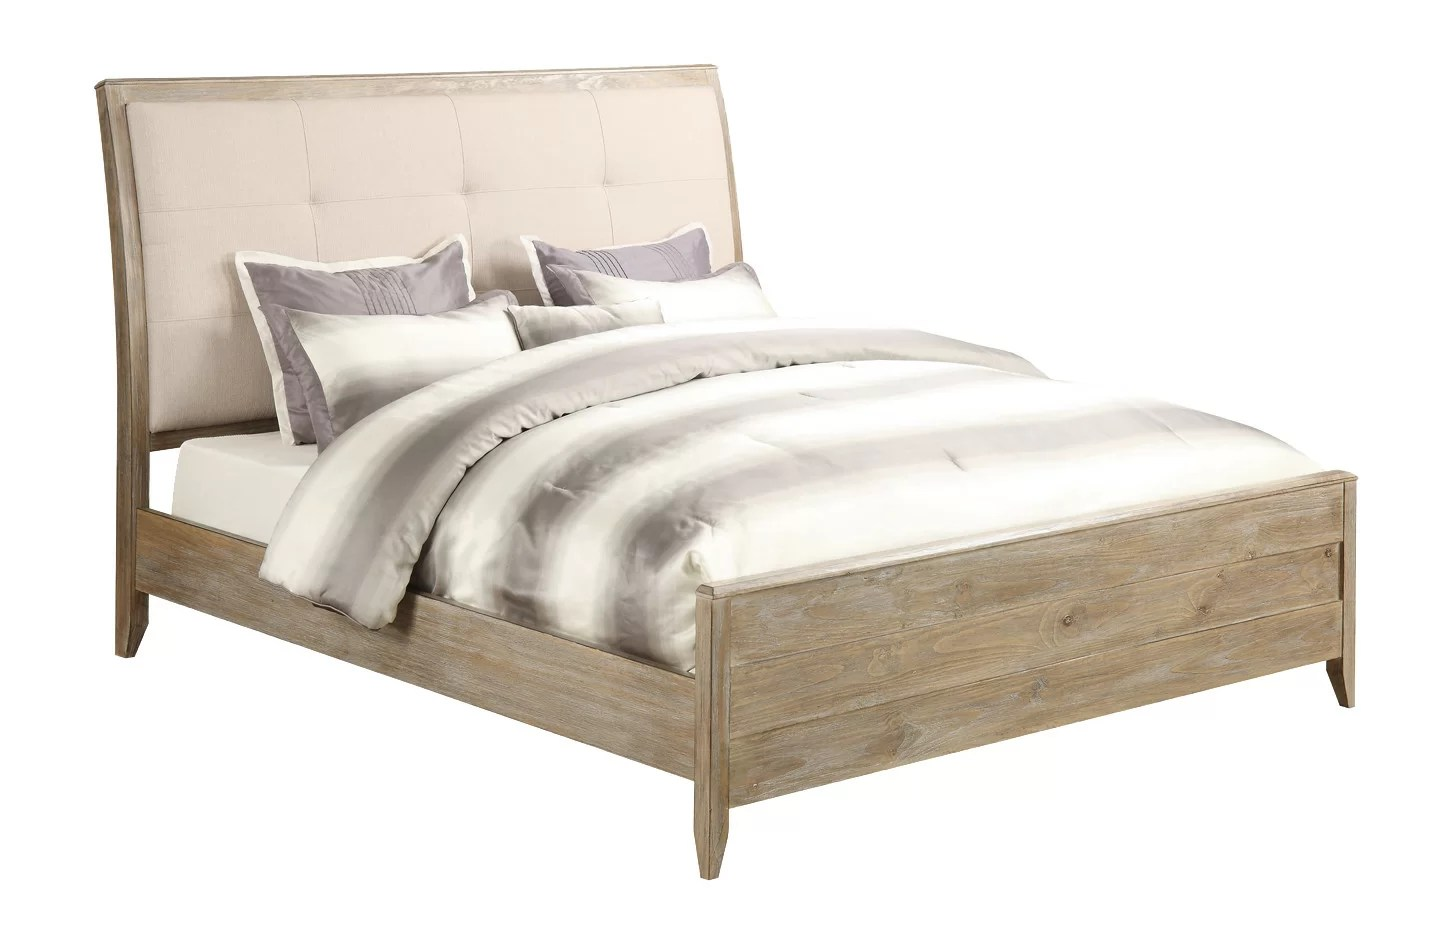 Gracie Oaks Fedna Upholstered Panel Bed